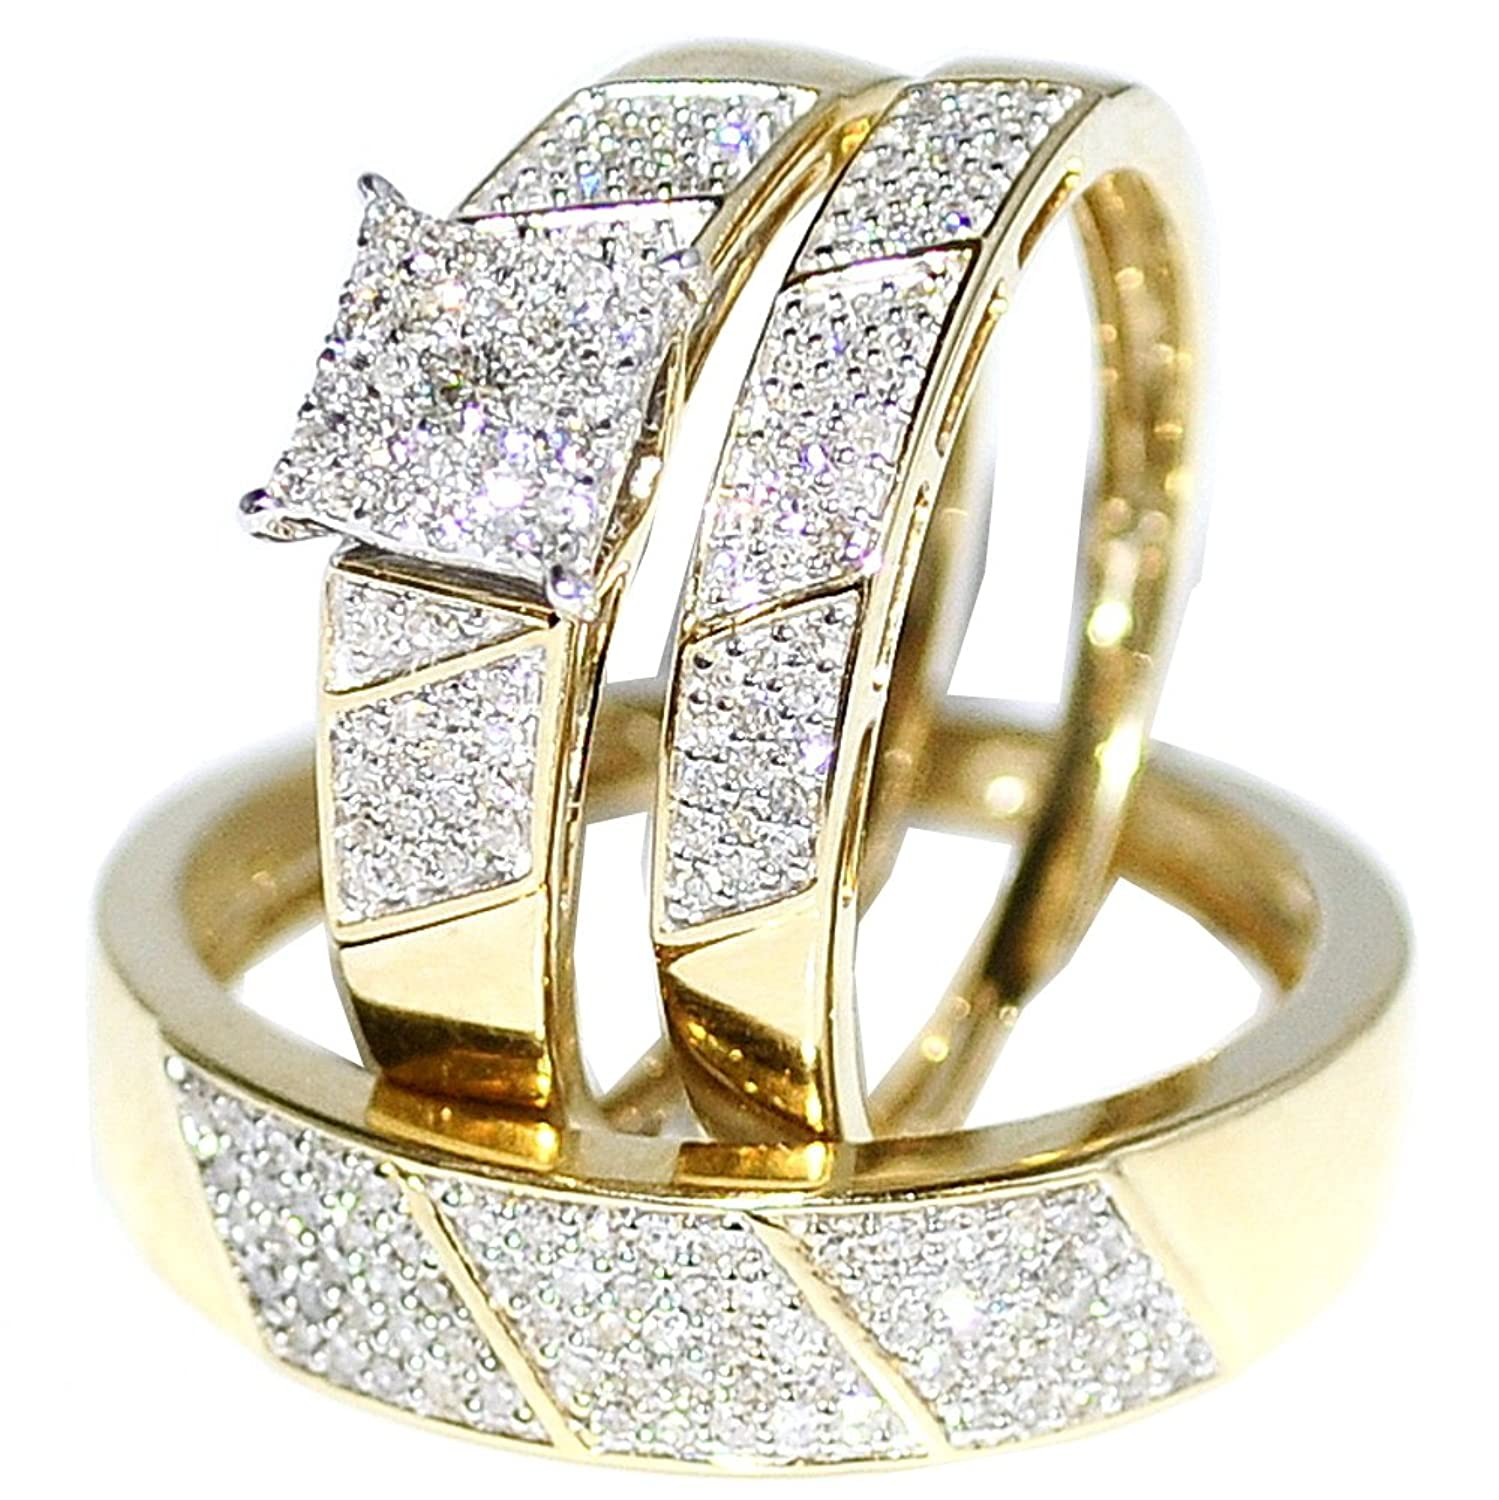 Amazon.com: His Her Wedding Rings Set Trio Men Women 10k Yellow ...